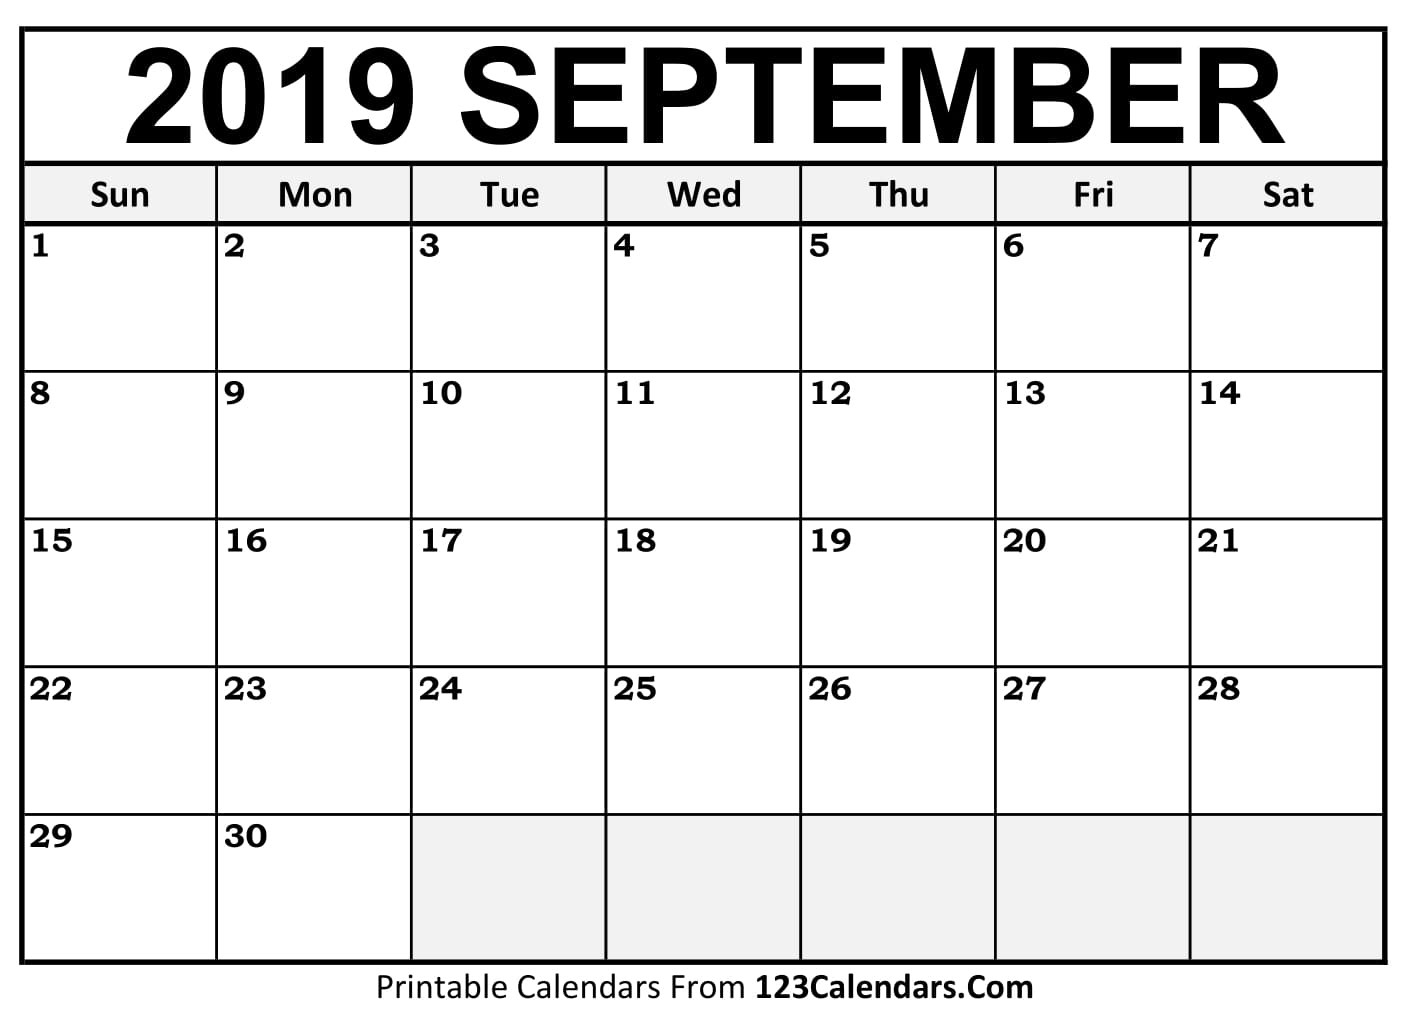 September 2019 Printable Calendar | 123Calendars  Full Page Printable Calendar